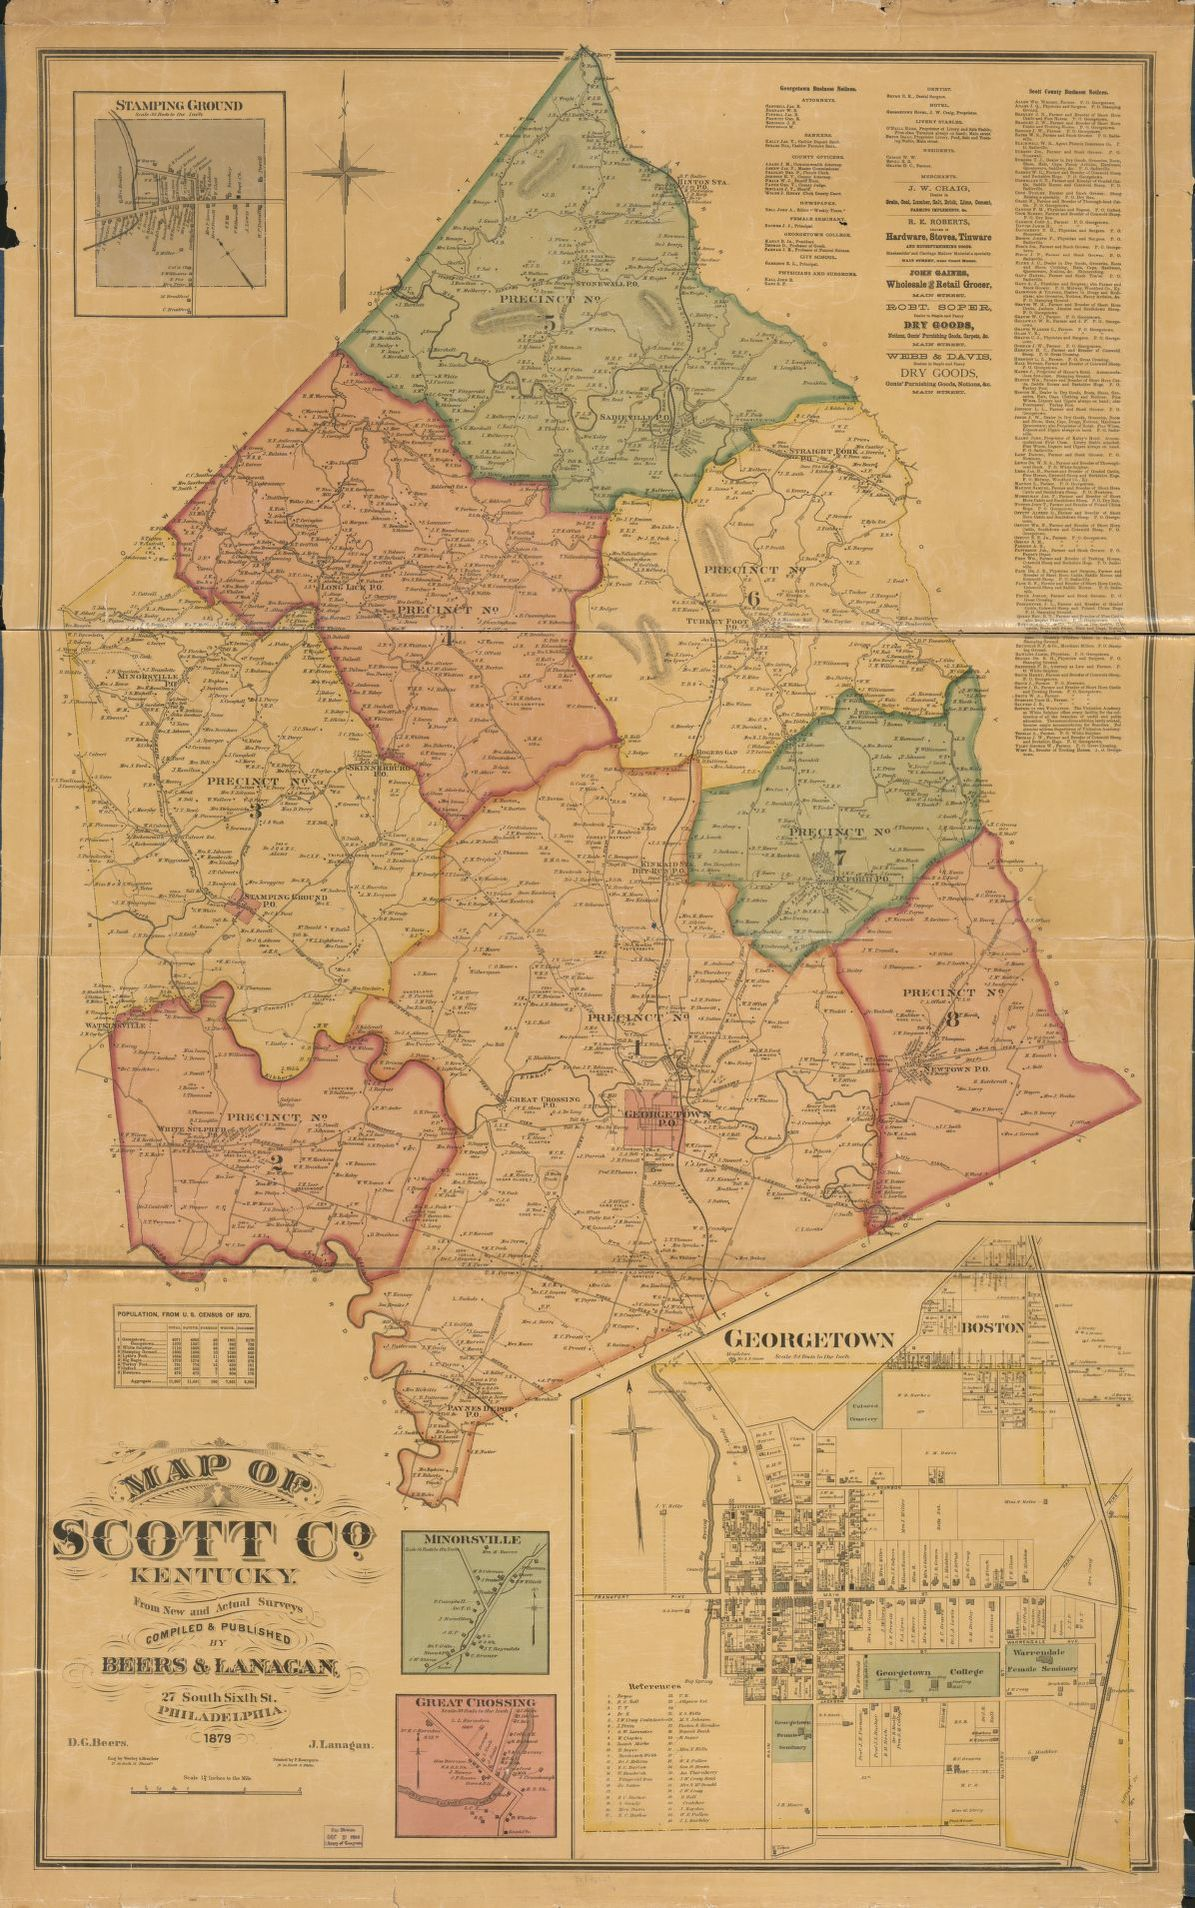 Map Of Scott Co Kentucky